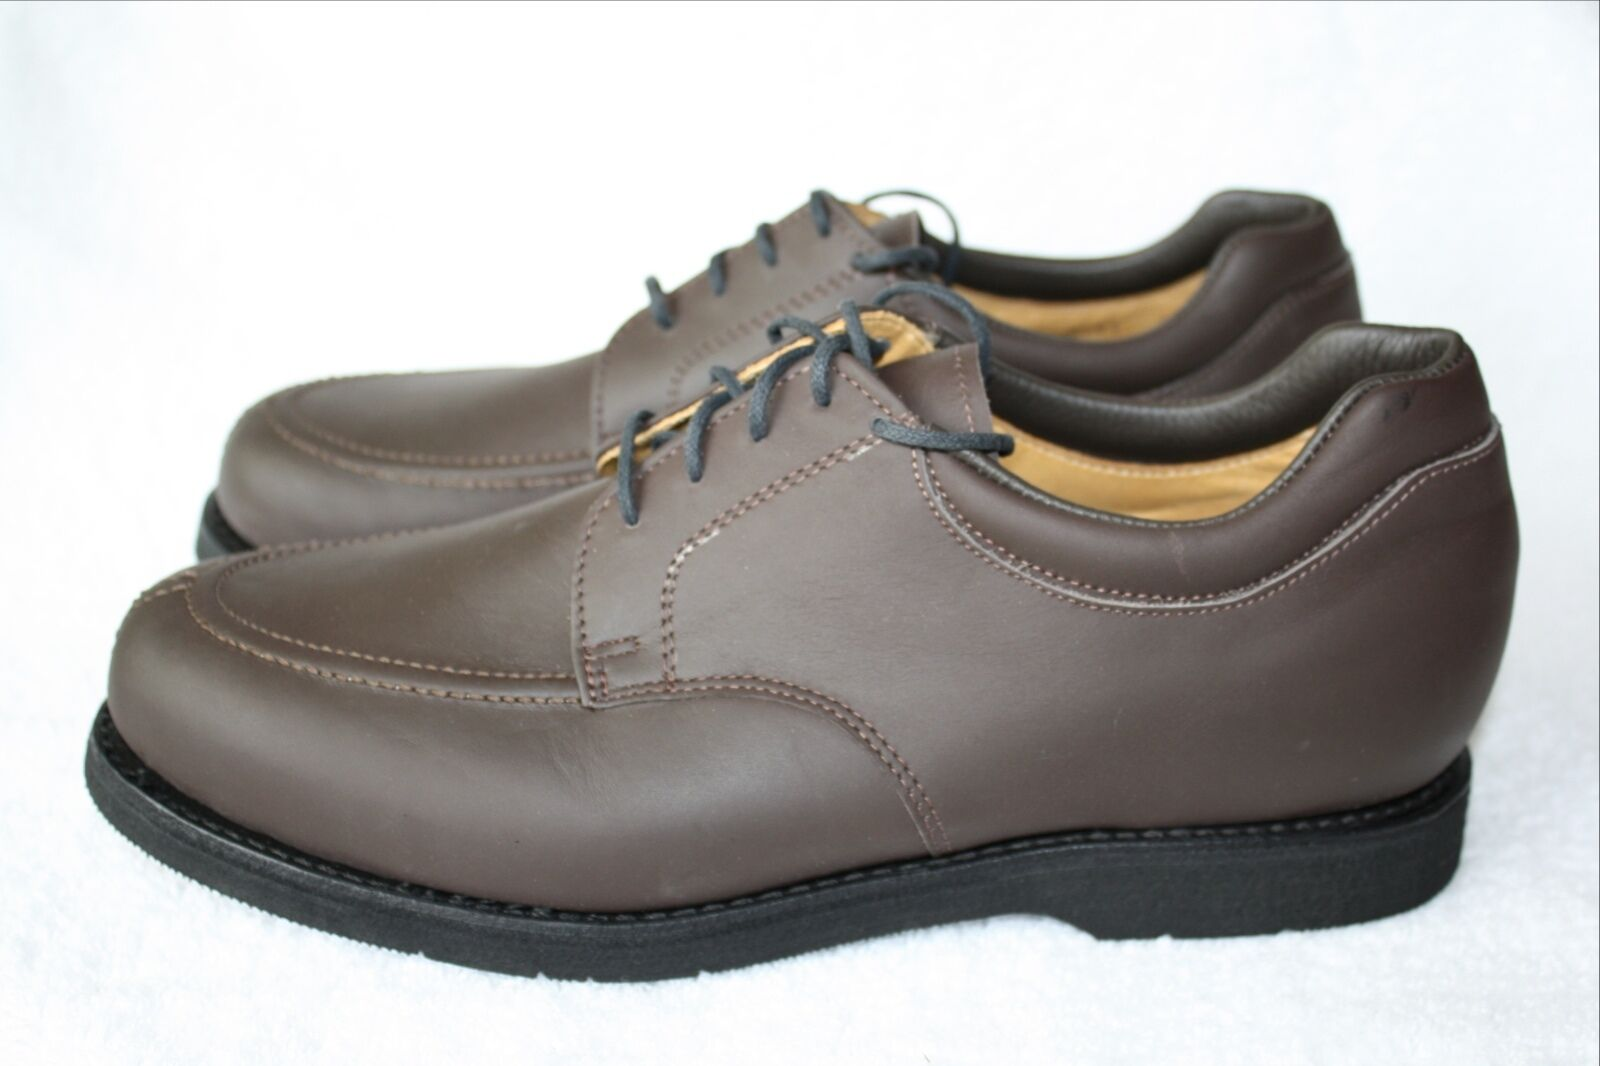 PW Minor Vibram Orthotic Oxford shoes Mens 11.5 C Narrow Algonquin Wide Depth